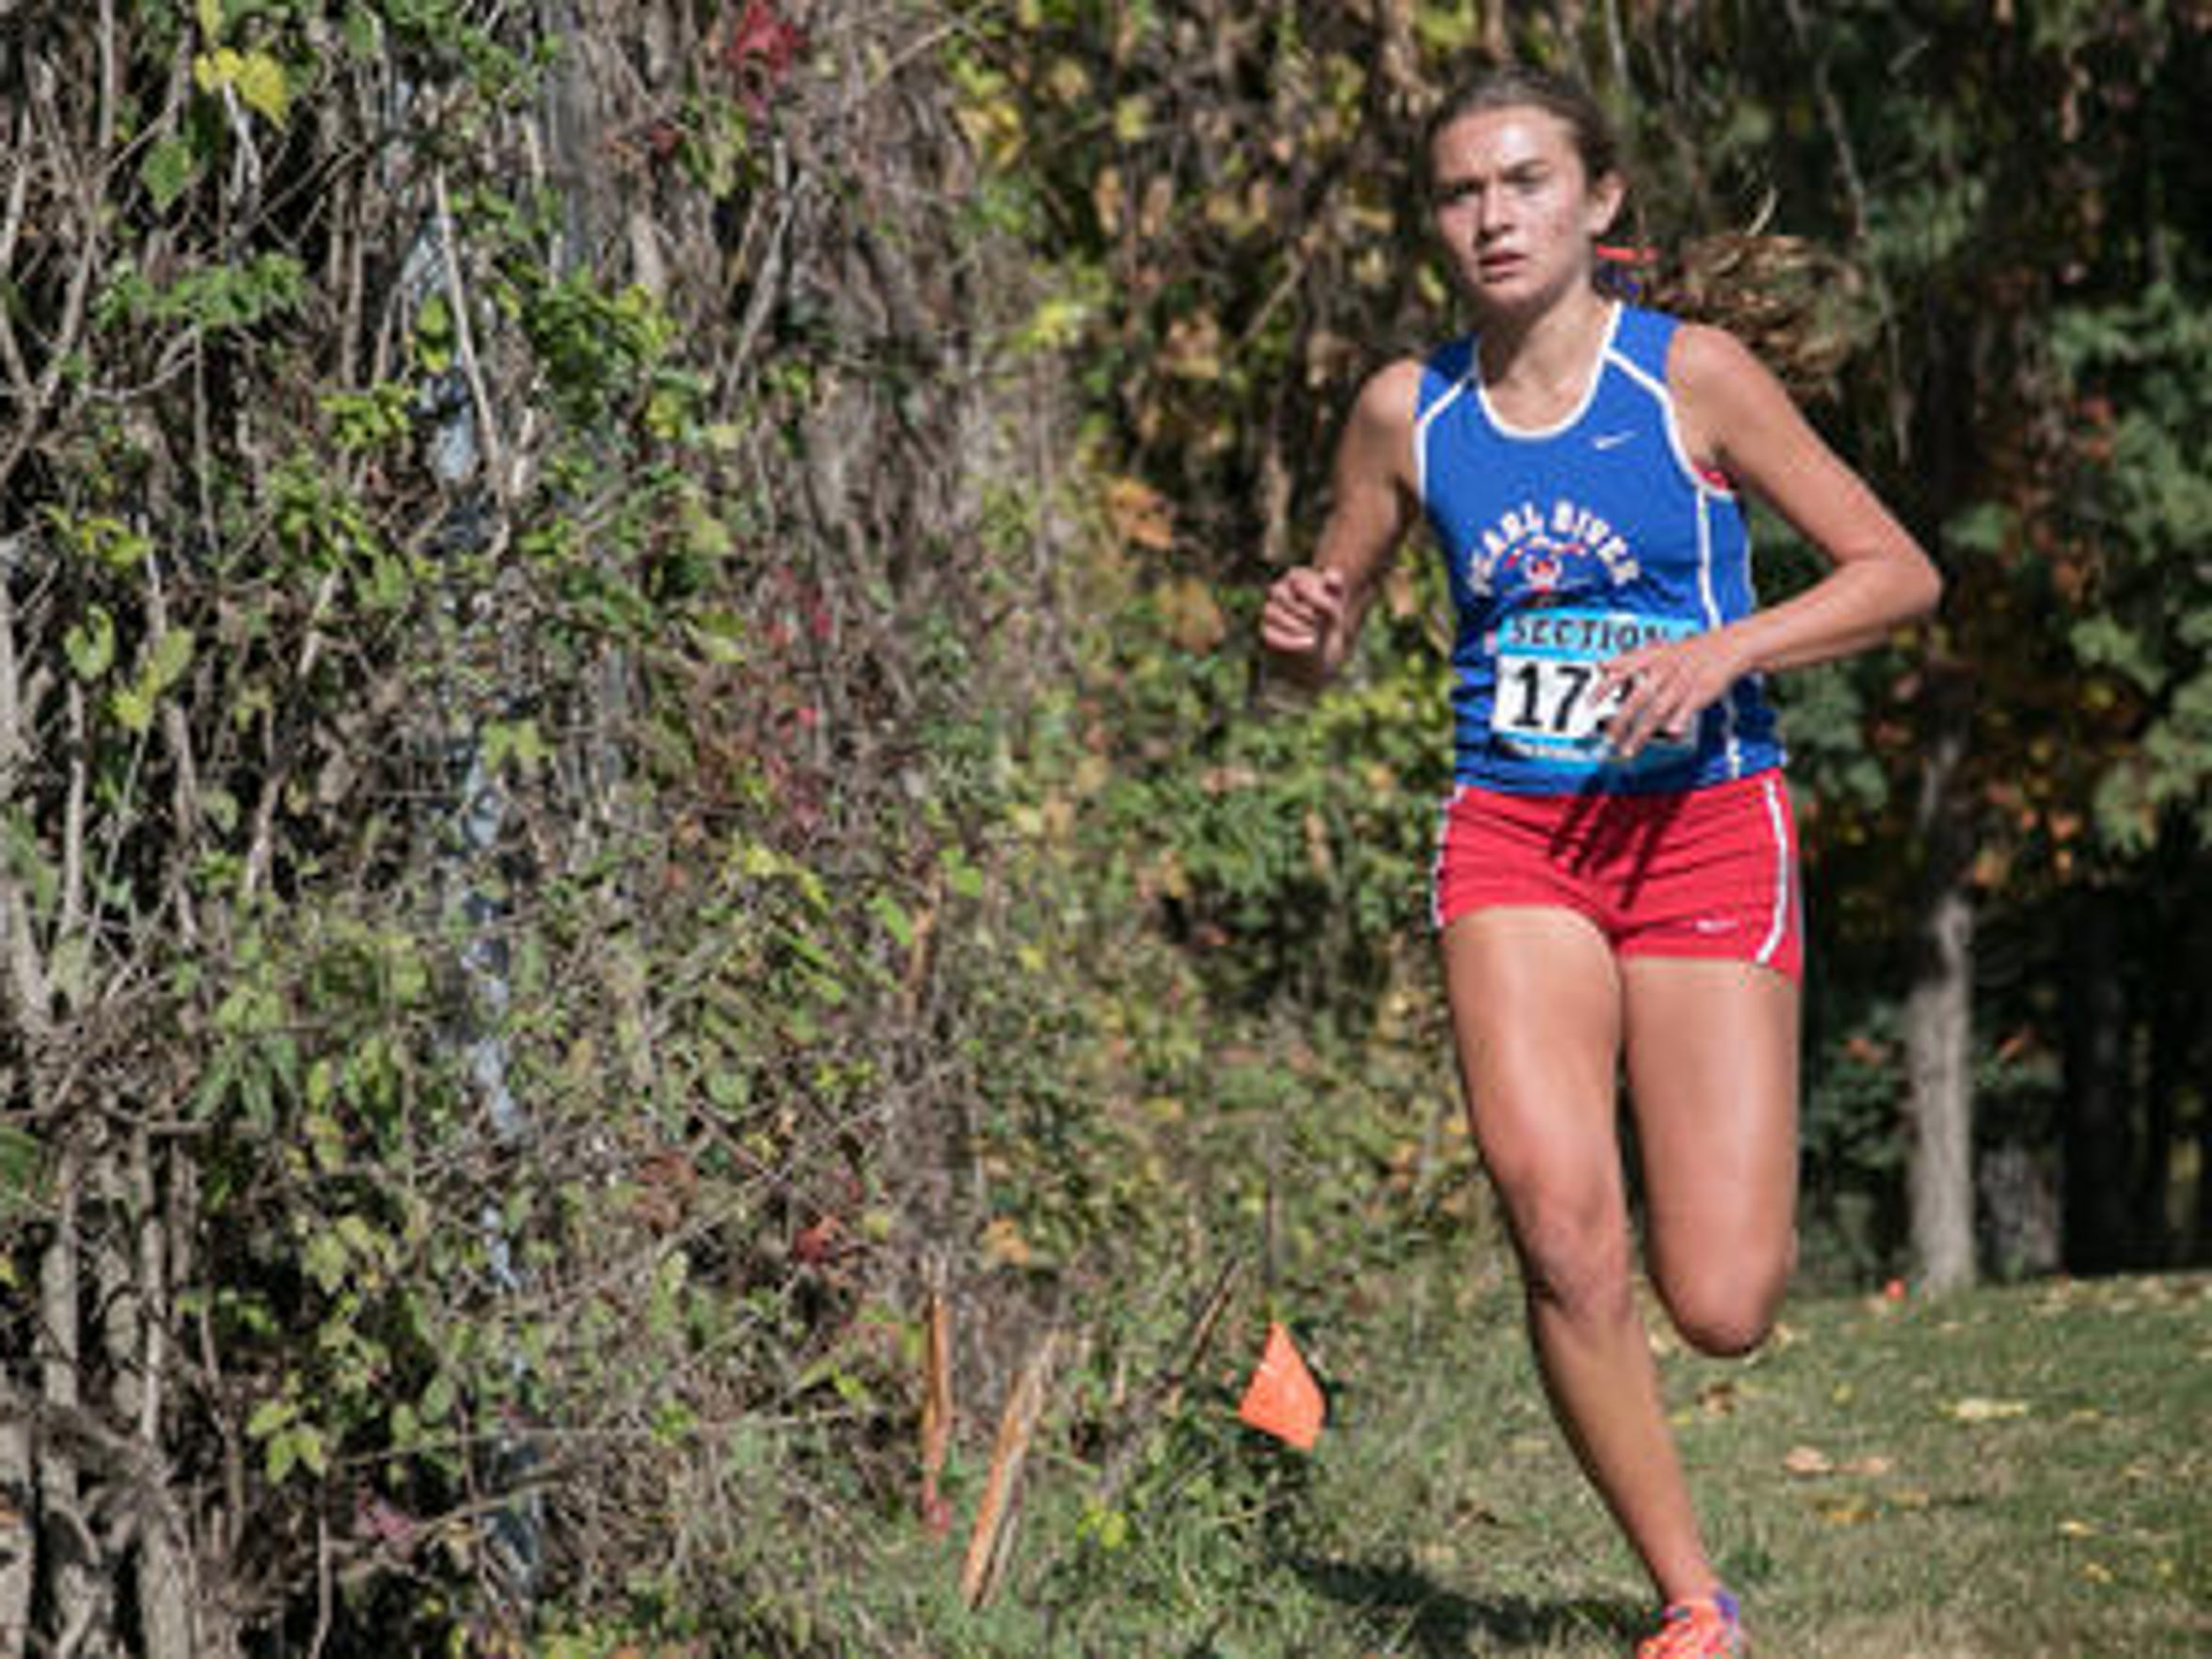 Pearl River's Mary Borkoski competing at the 2015 Section